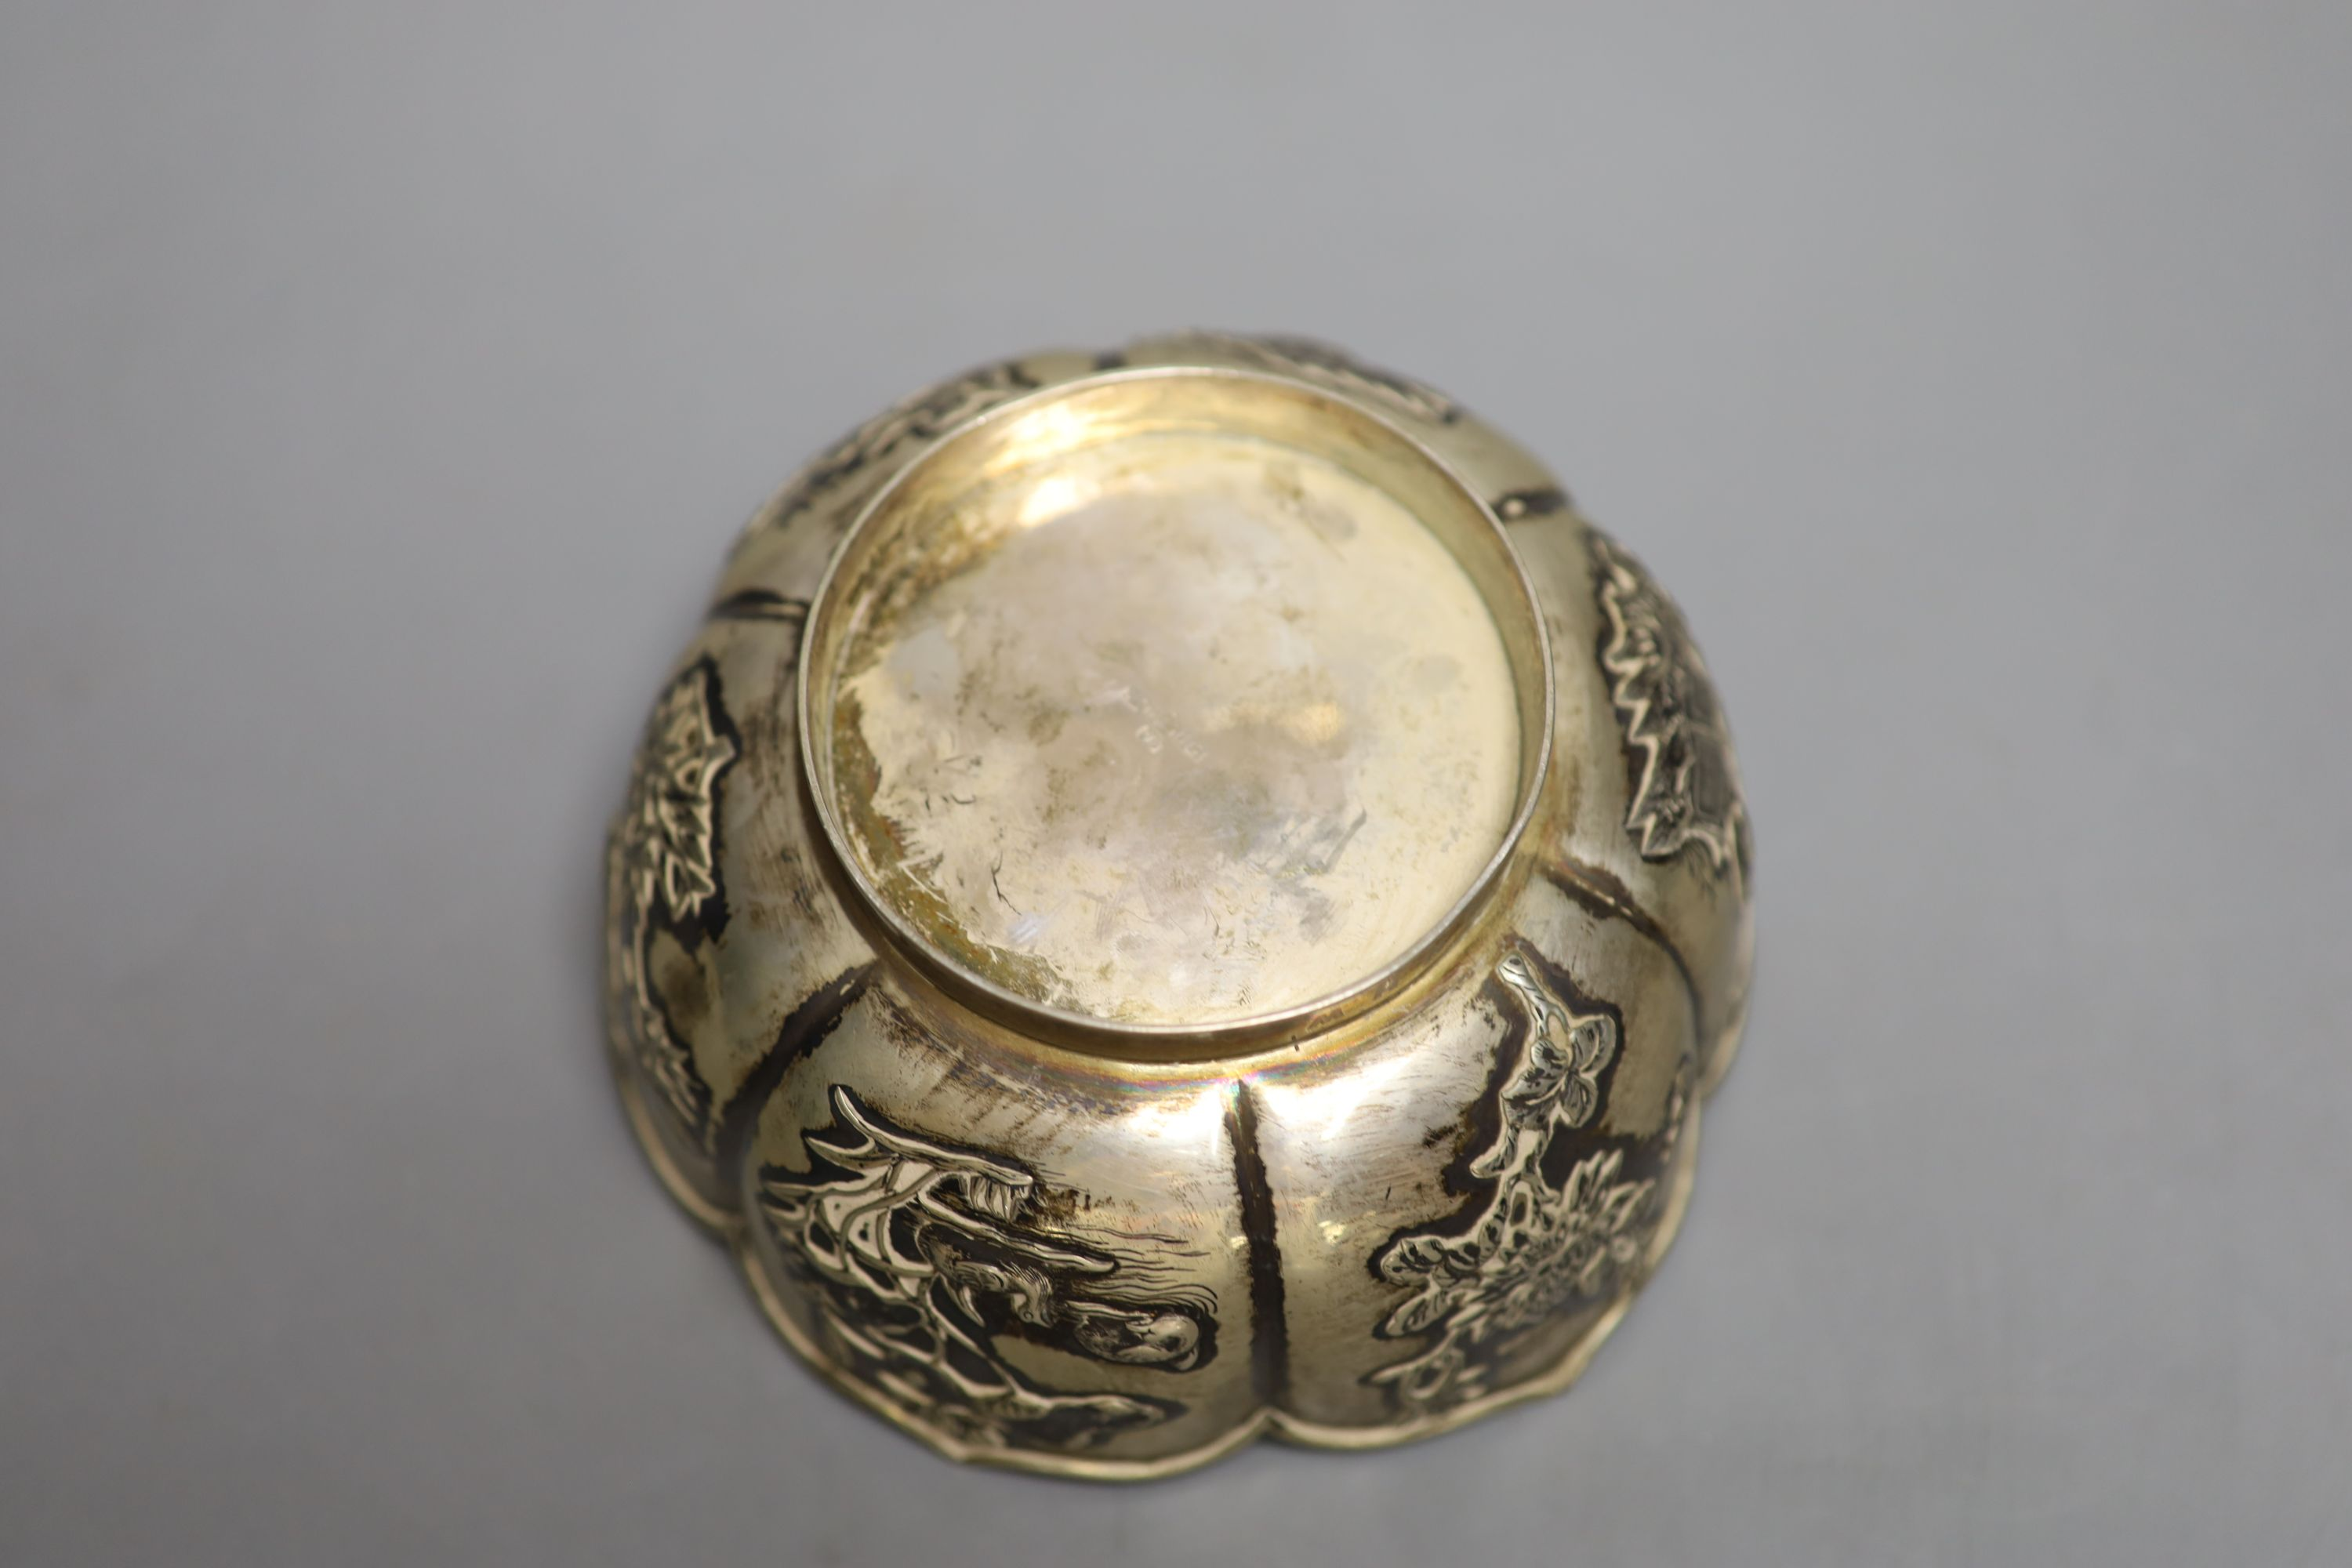 An early 20th century Chinese Export white metal bowl, by Wang Hing, Hong Kong, 13.5cm, 6oz. - Image 3 of 4